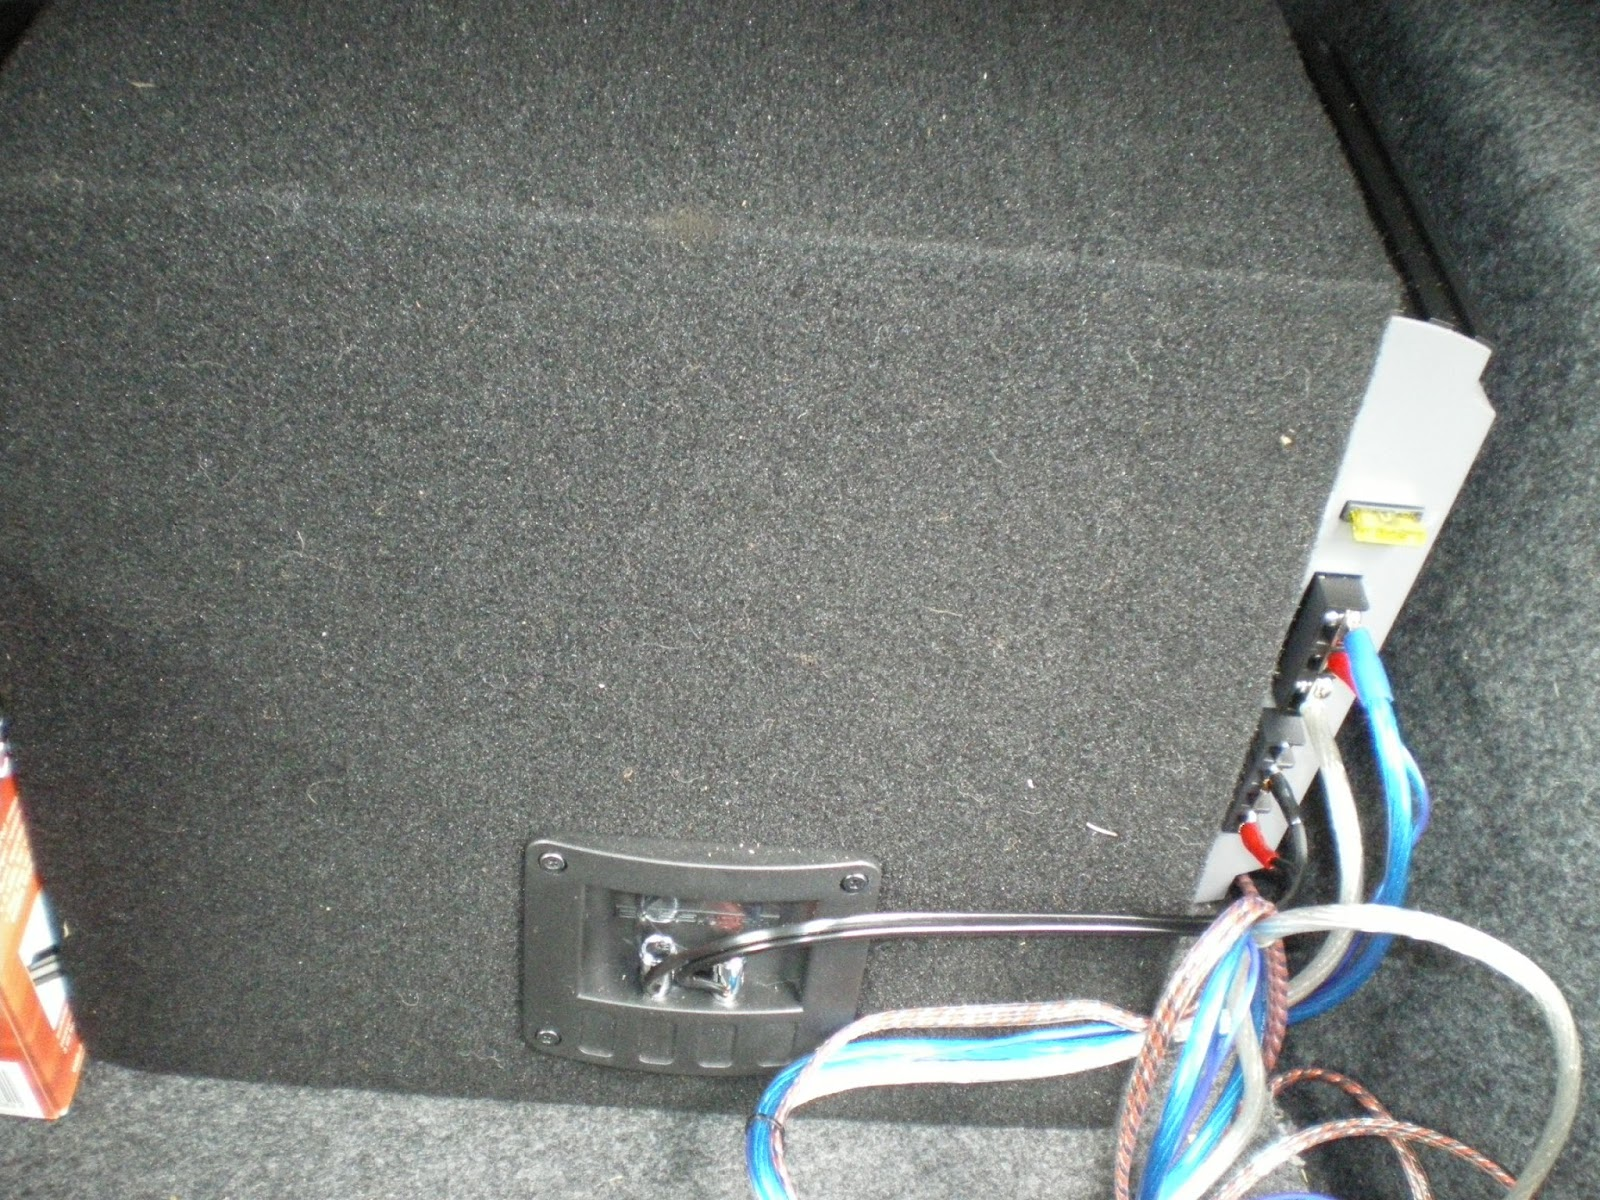 ... I mounted my Amp and Sub on the Subwoofer box. I made this choice  because I wanted the option of removing my Amp and Sub if I needed more  trunk space.